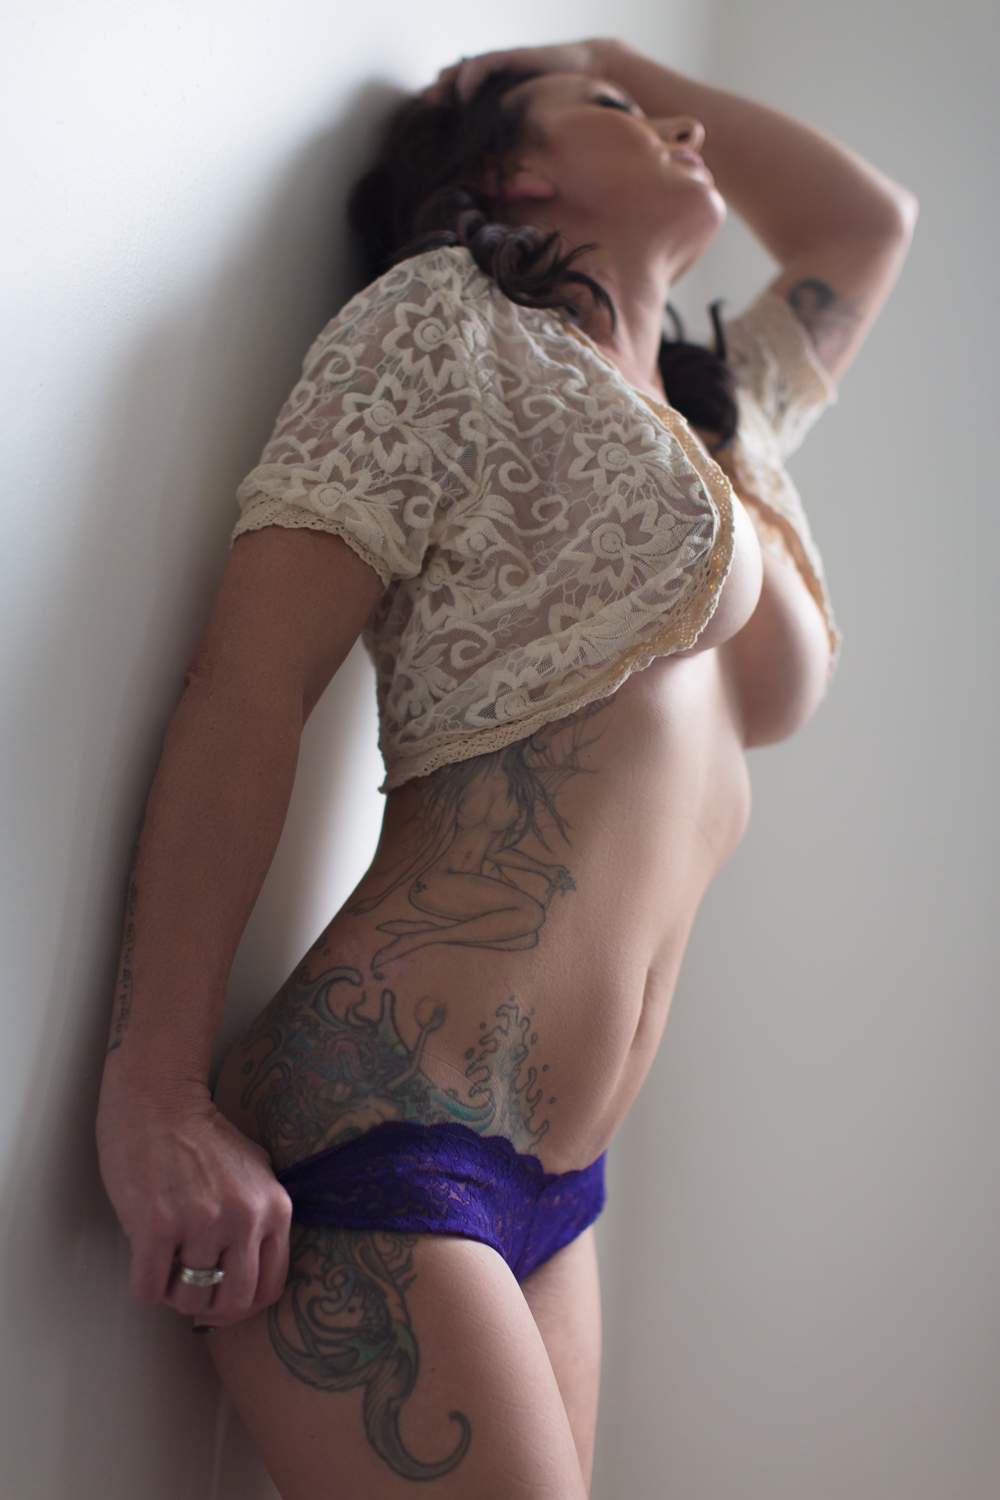 Mermaid side tattoo, sexy boudoir wall pose, side boob